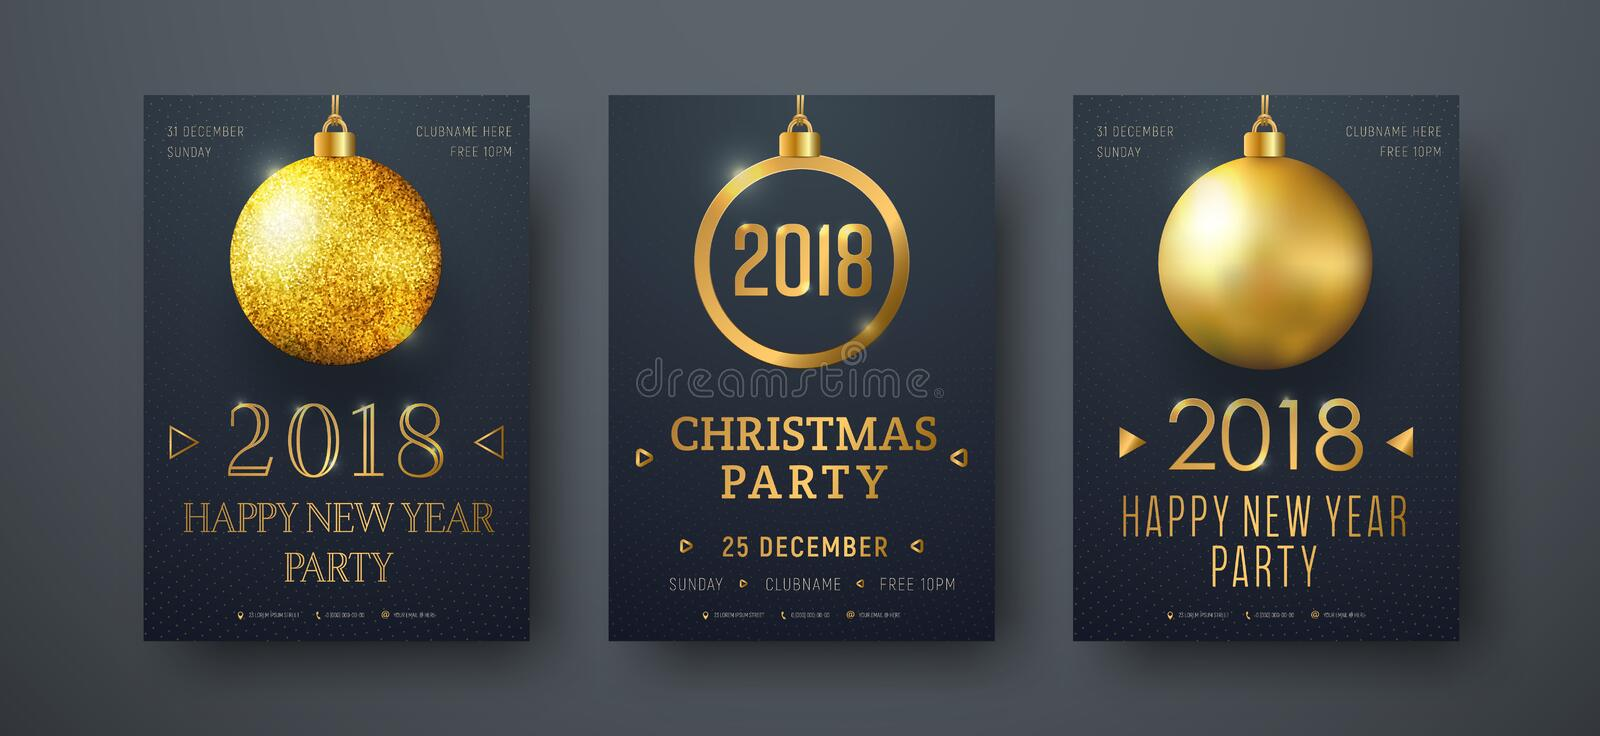 Design of vector black posters with golden christmas balls vector illustration